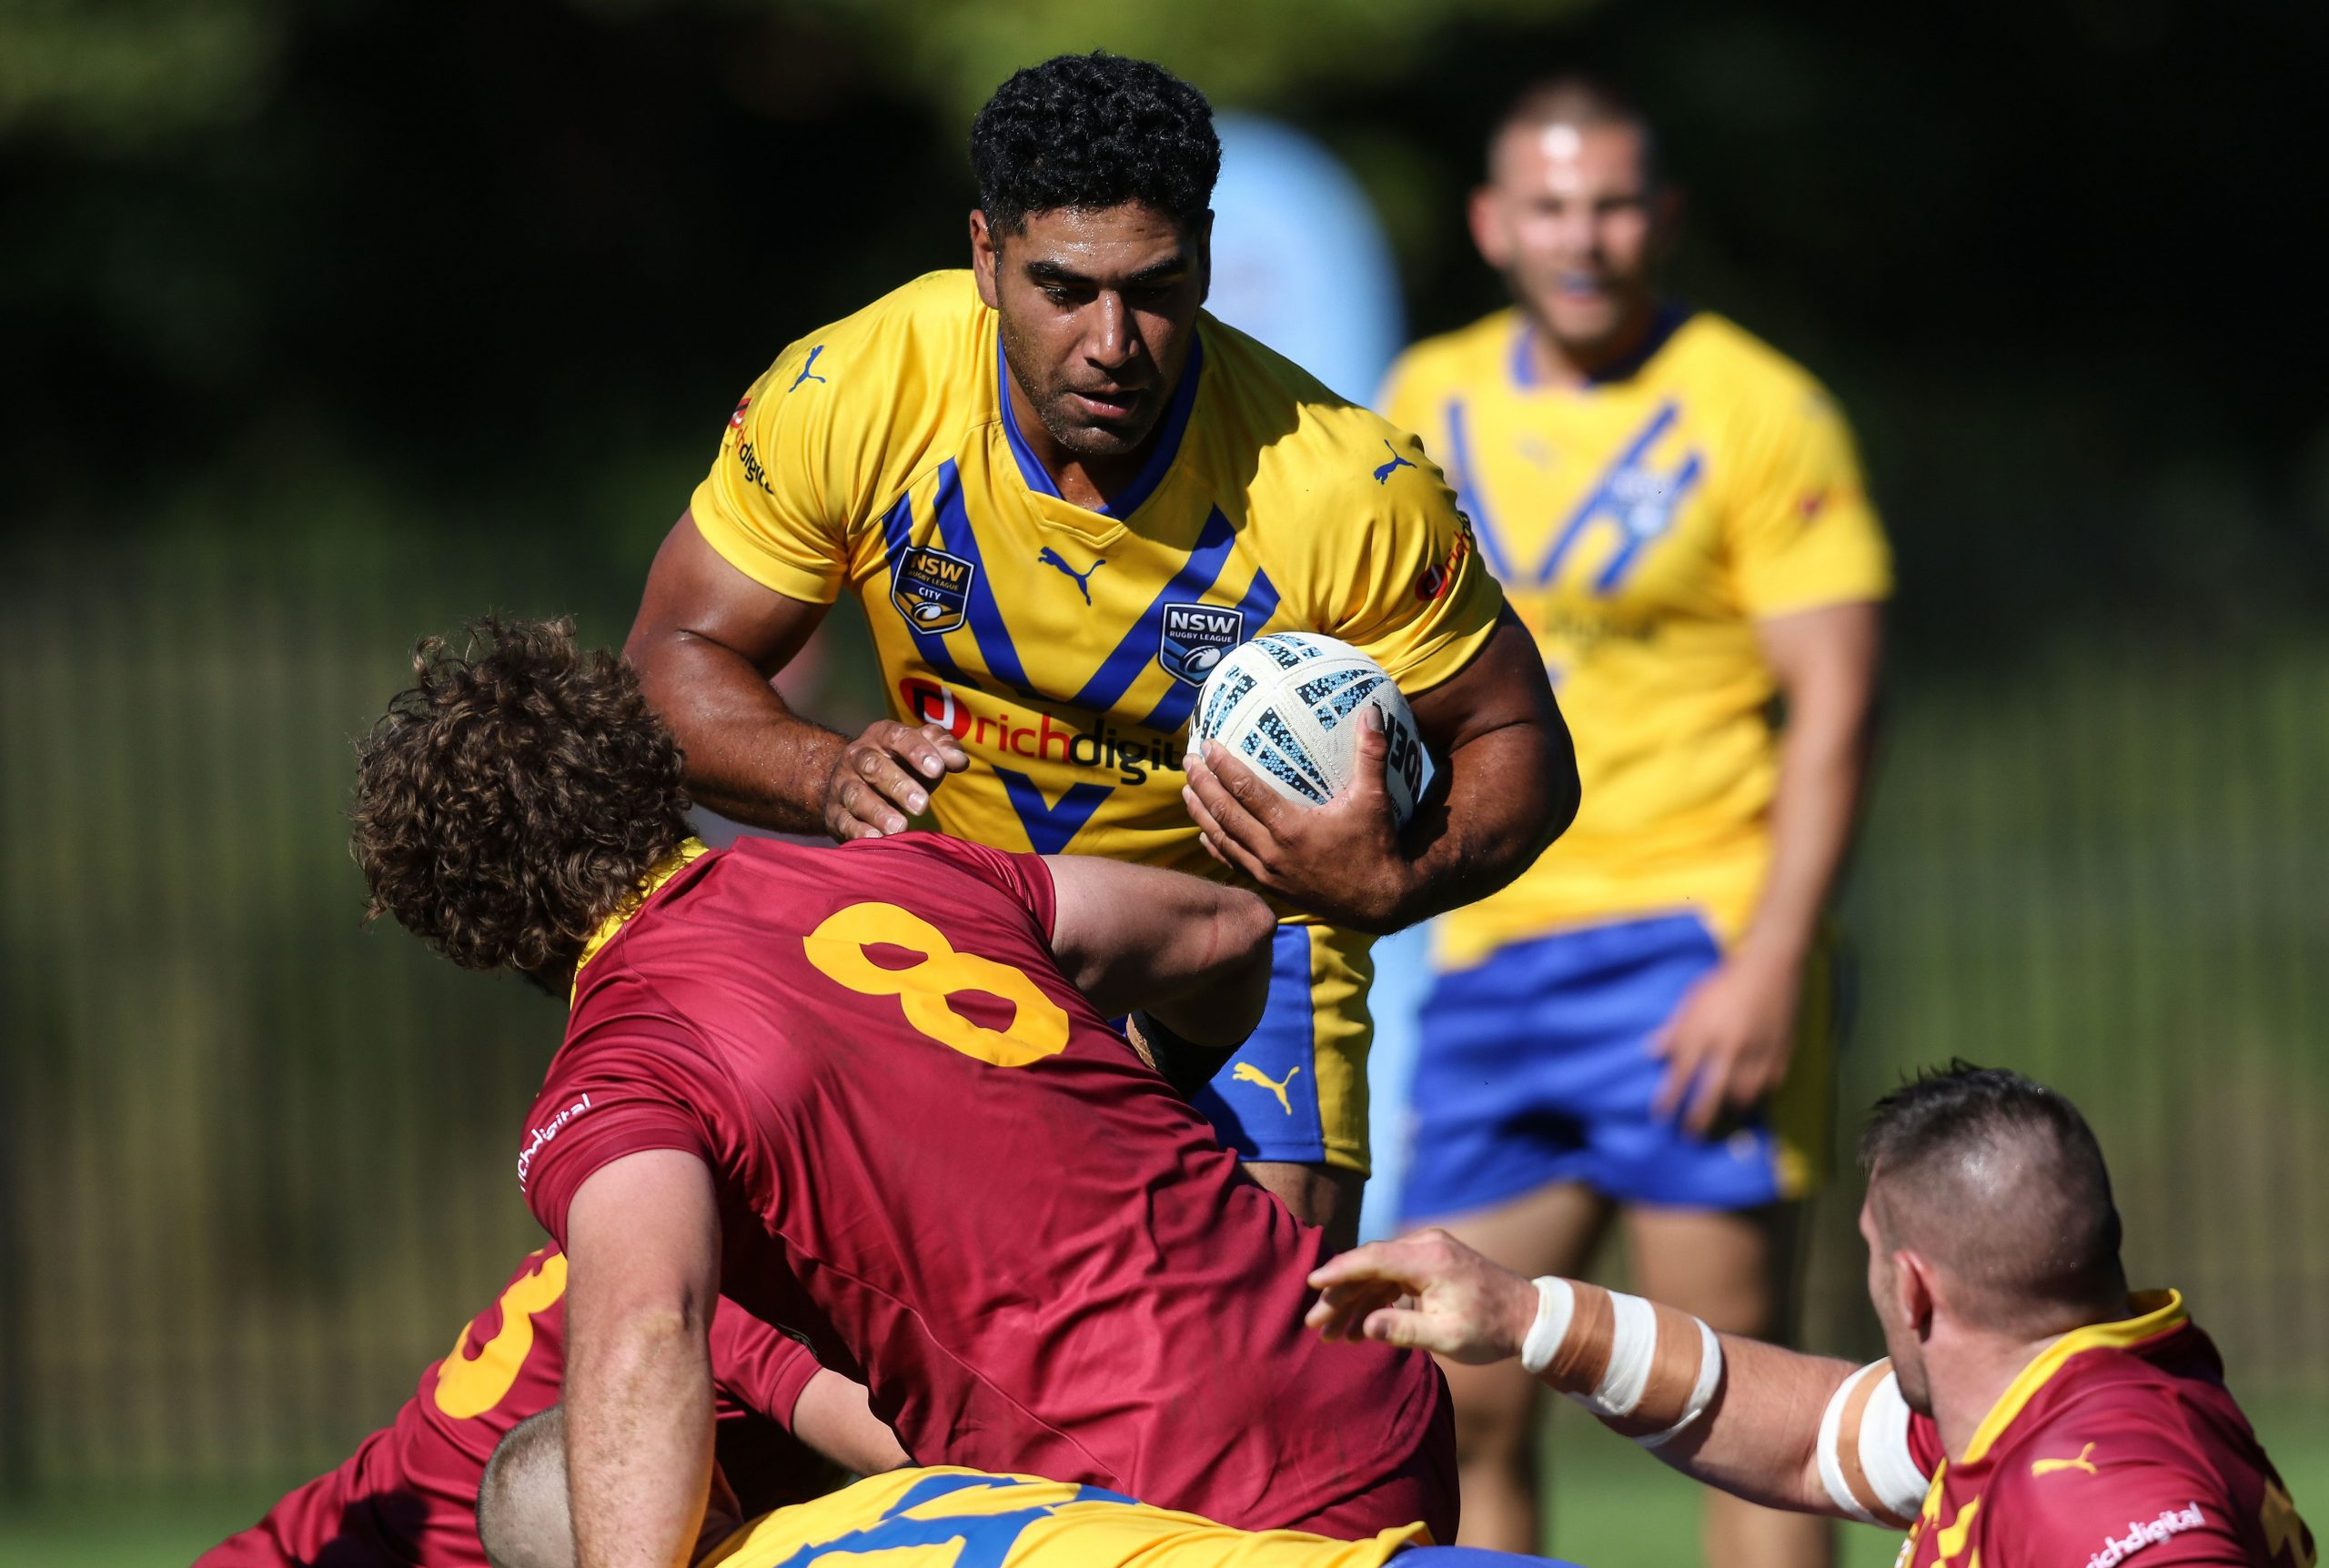 NSW City Men's team too strong for Country in Figtree